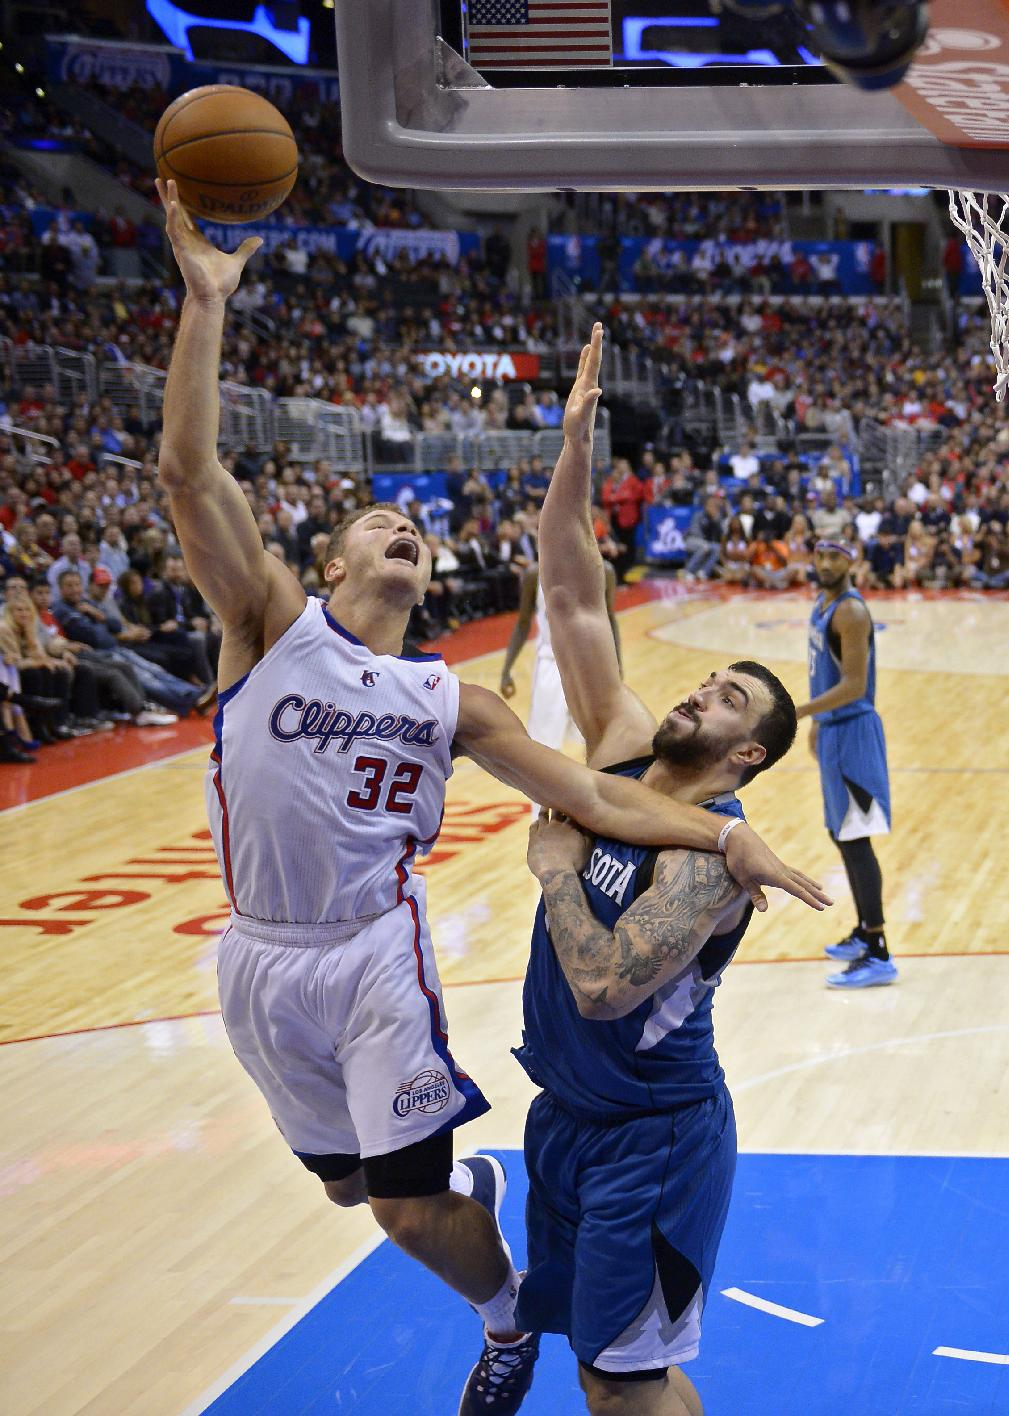 Los Angeles Clippers forward Blake Griffin, left, puts up a shot as Minnesota Timberwolves center Nikola Pekovic, of Montenegro, defends during the second half of an NBA basketball game, Monday, Nov. 11, 2013, in Los Angeles. The Clippers won 109-107